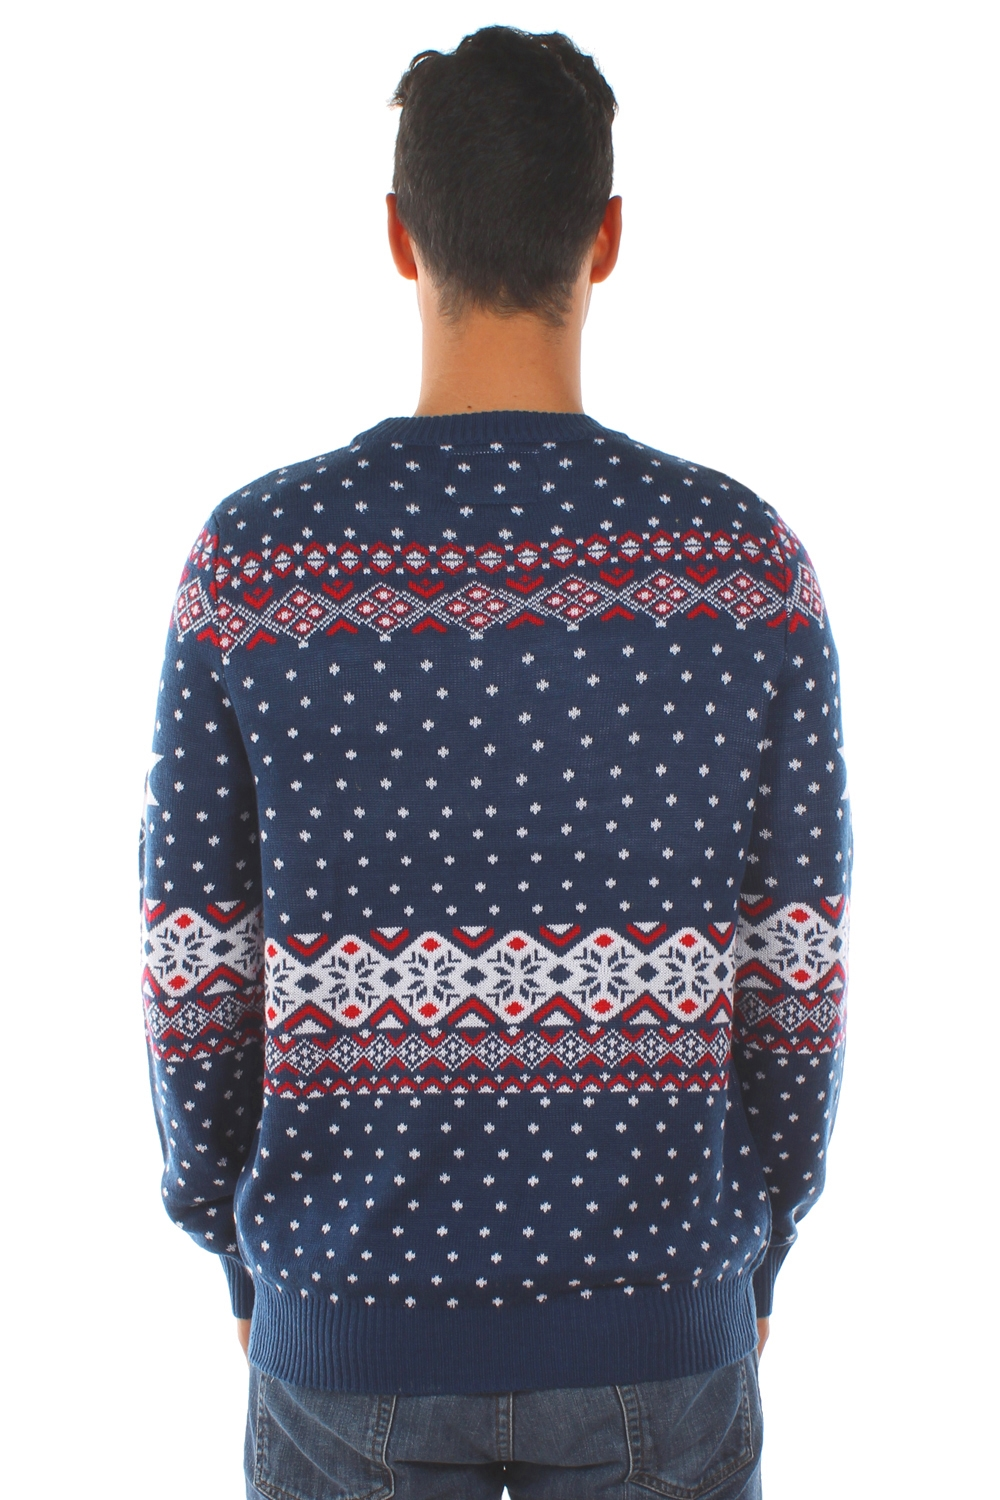 Reindeer Climax Christmas Sweater Image3